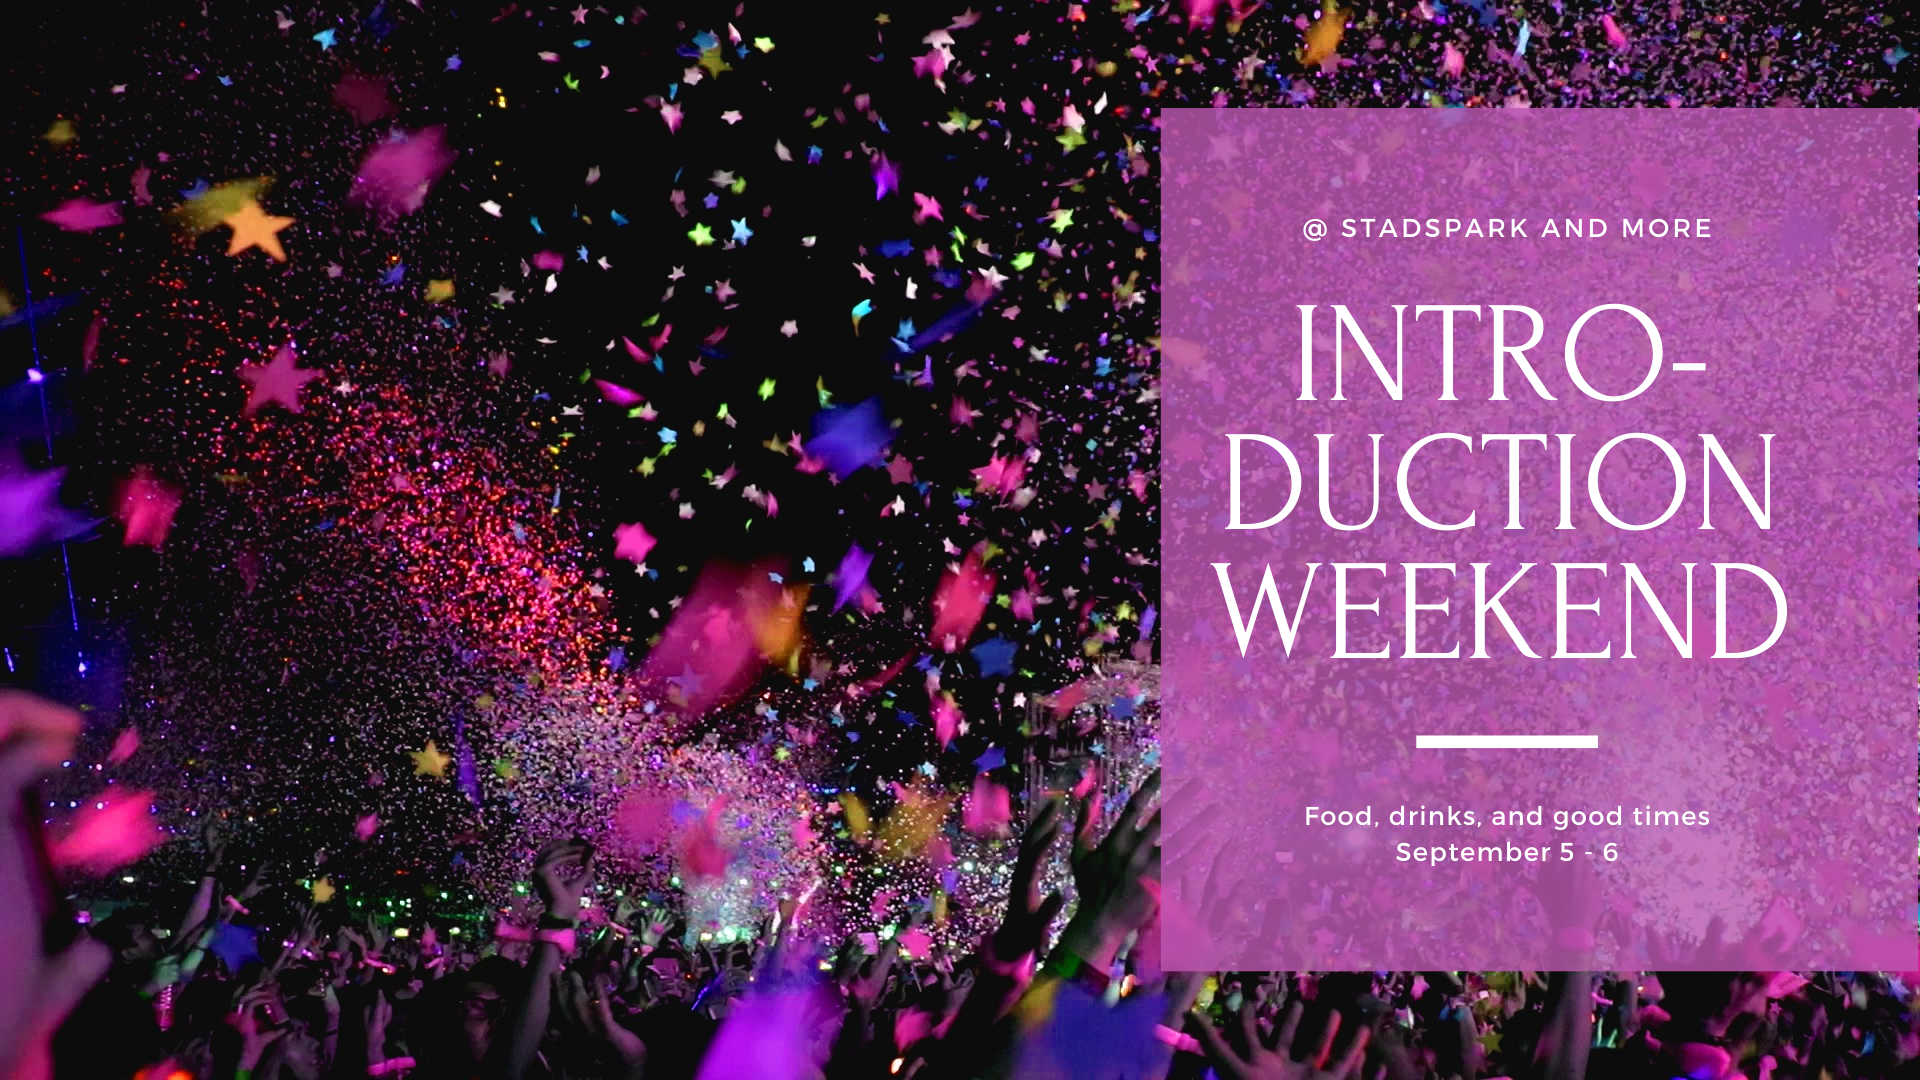 Introduction Weekend!